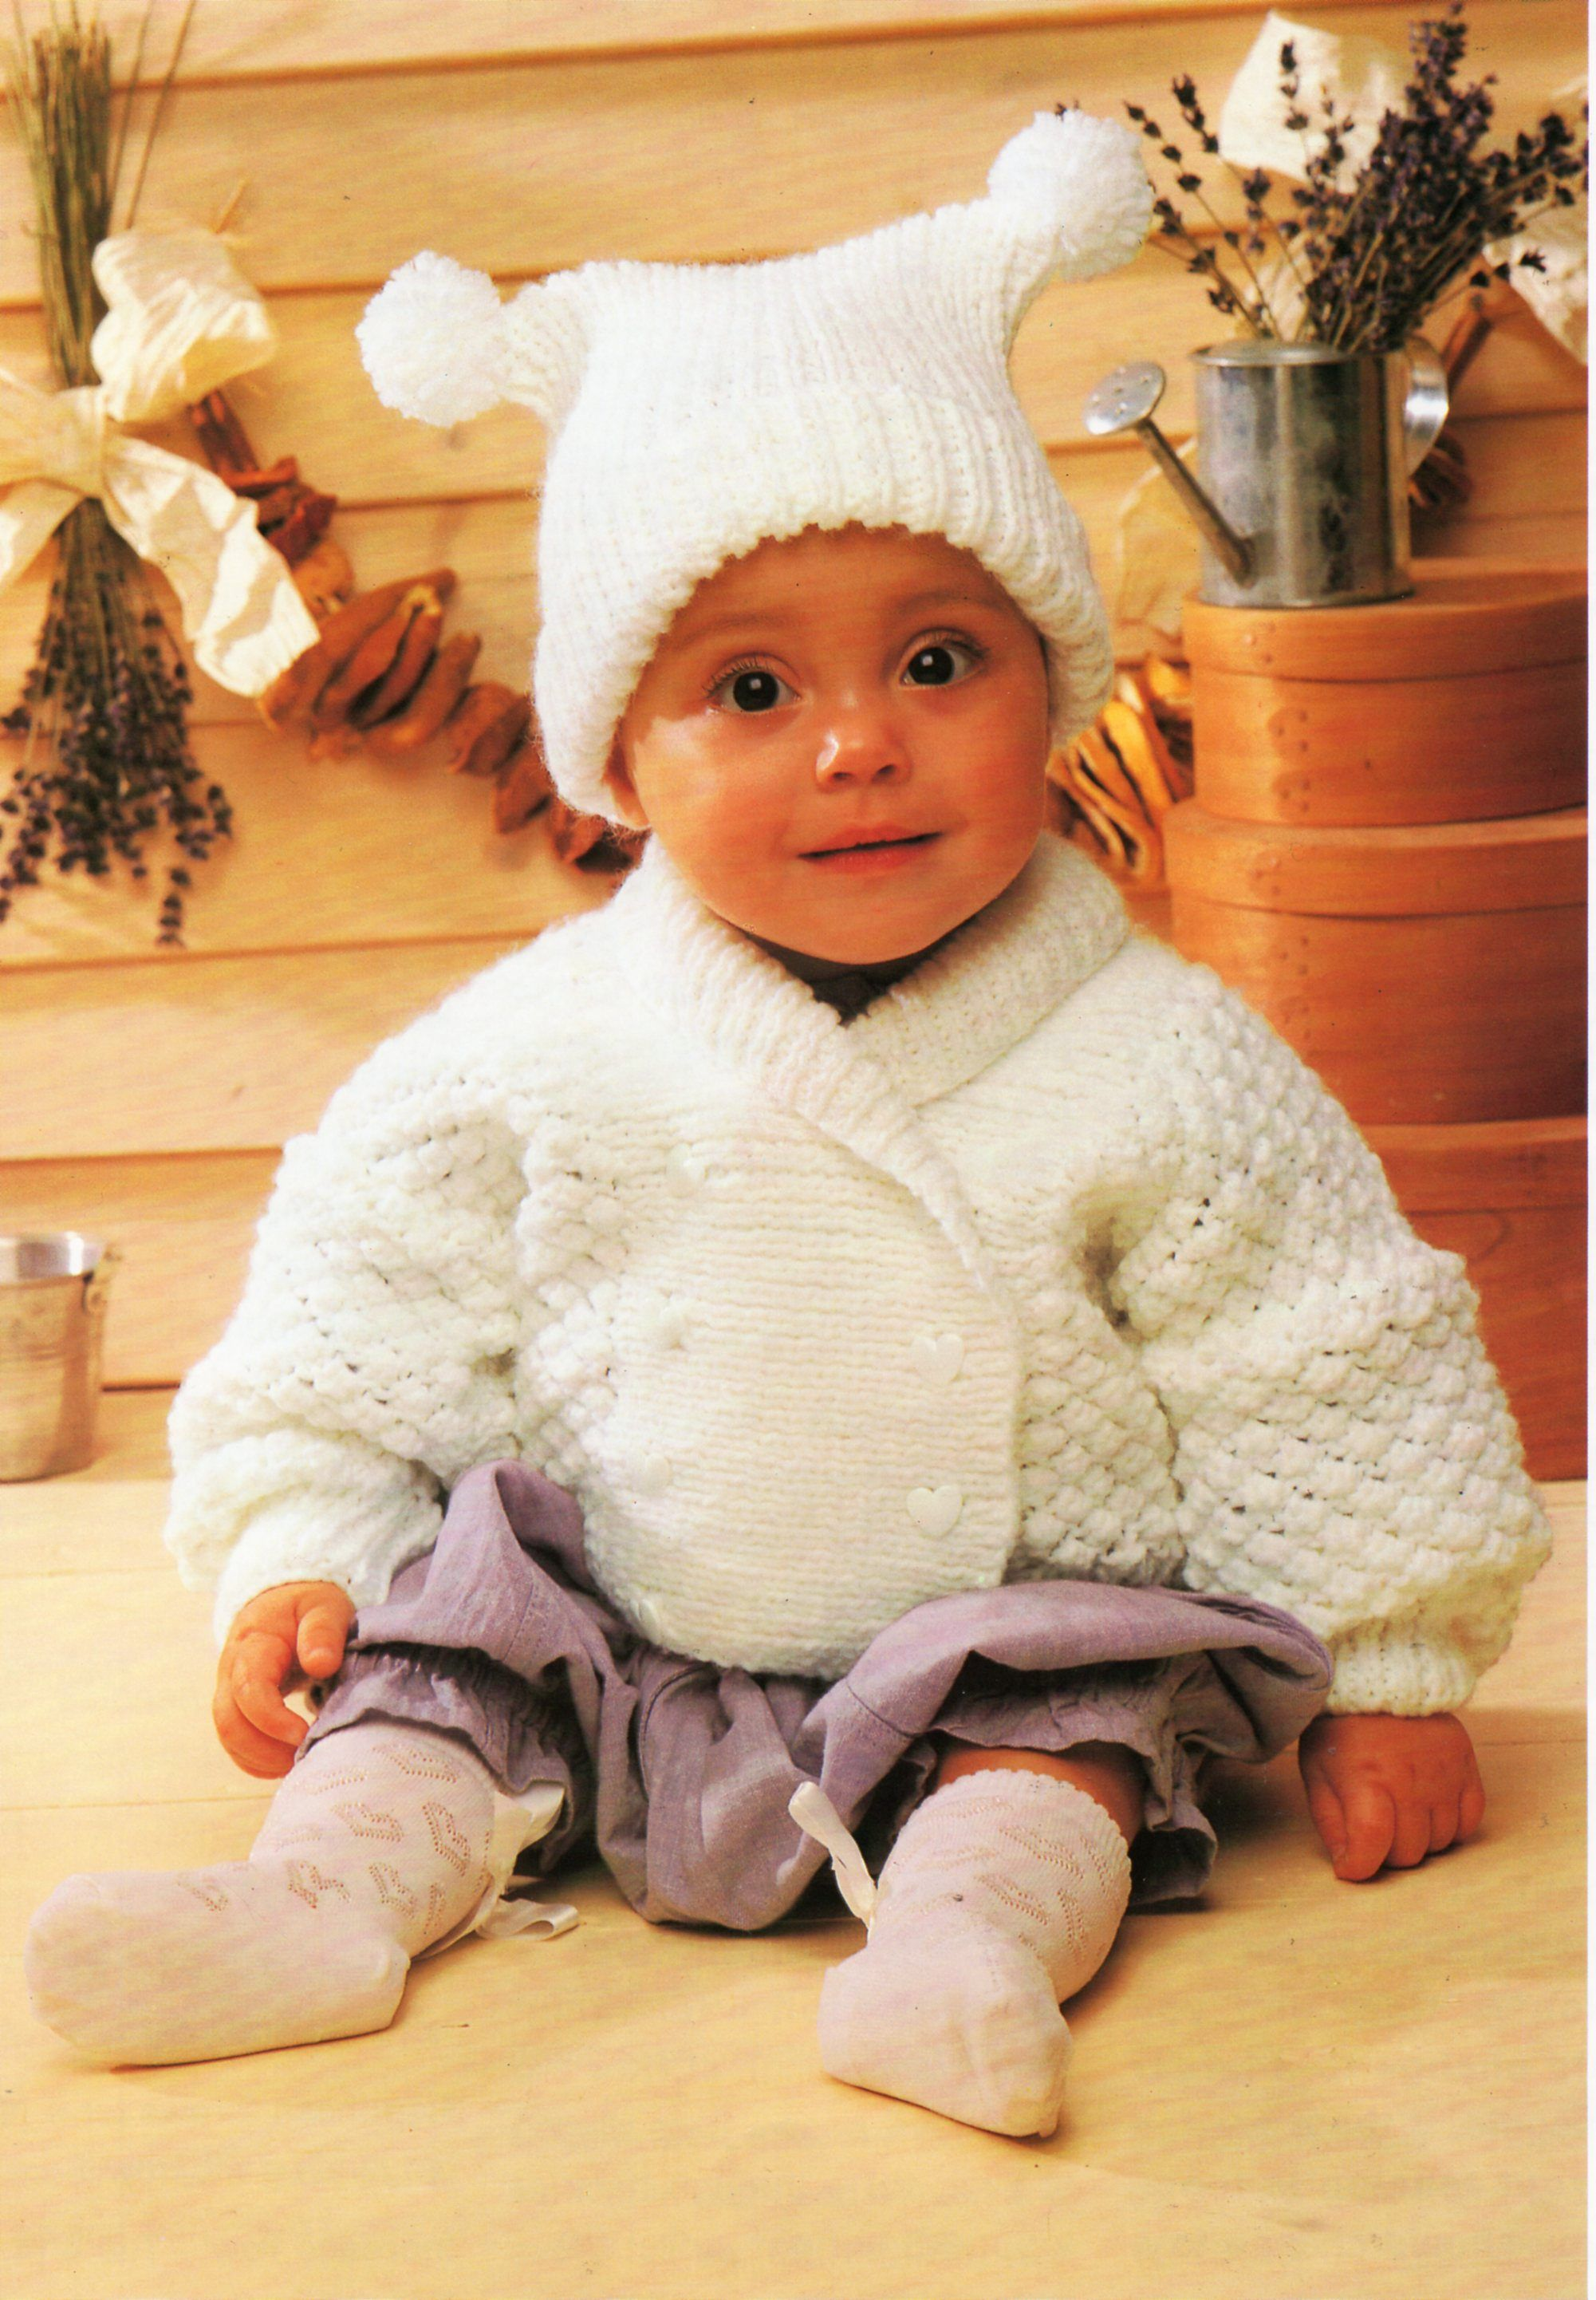 Baby jacket hat knitting pattern pdf baby double breasted shawl baby jacket hat knitting pattern pdf baby double breasted shawl collar cardigan cap 16 22 aran worsted 10ply pdf instant download bankloansurffo Choice Image